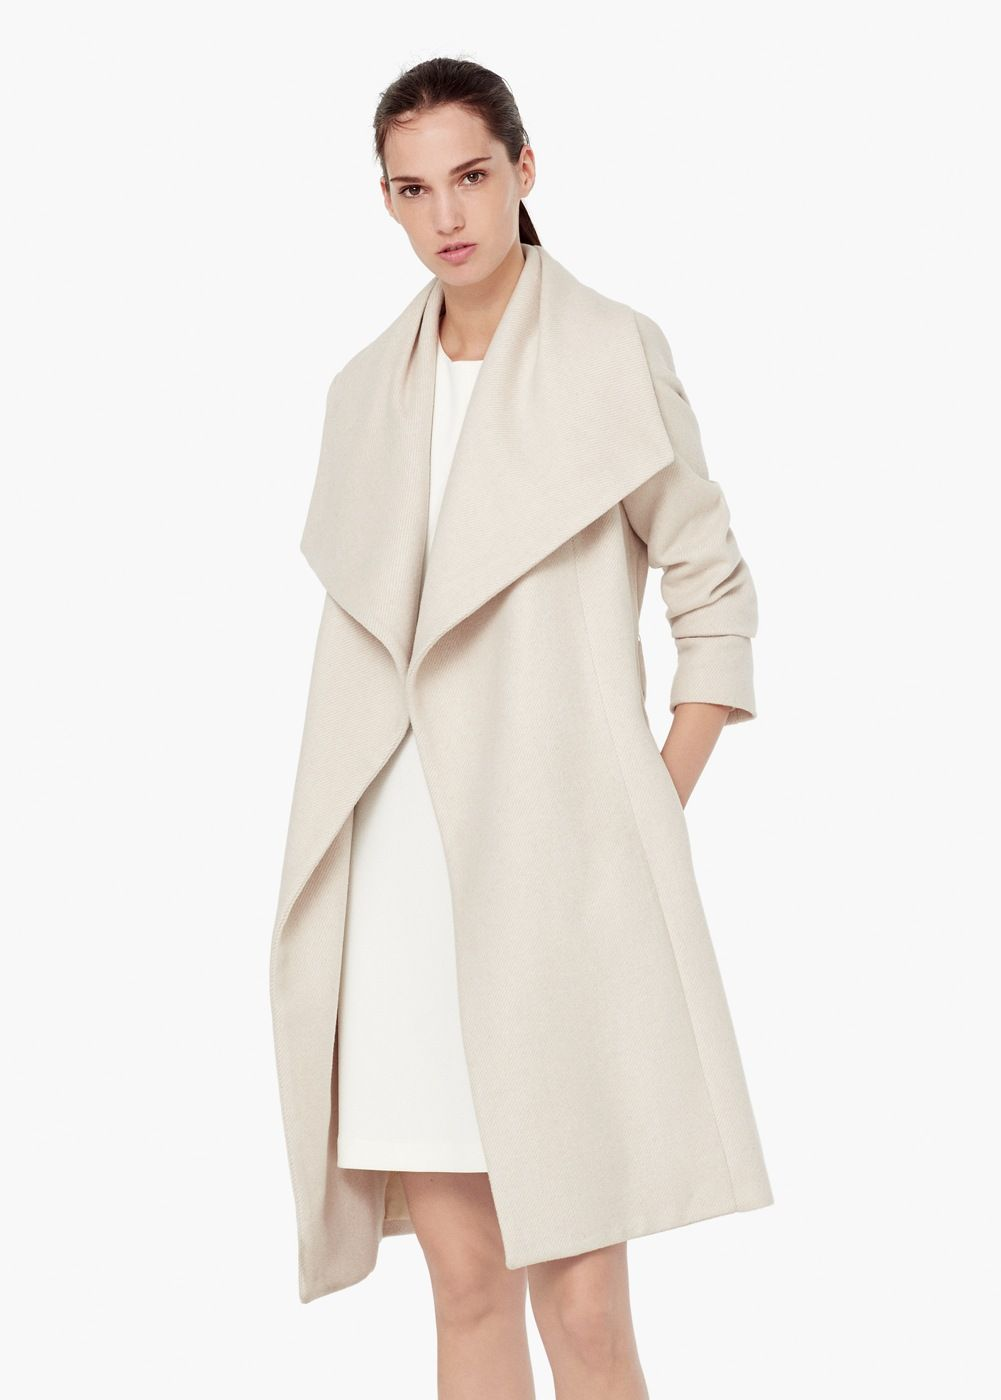 Lapels wool coat - Women in 2019   Style and Trends   Pinterest ... ba508d3dd37f